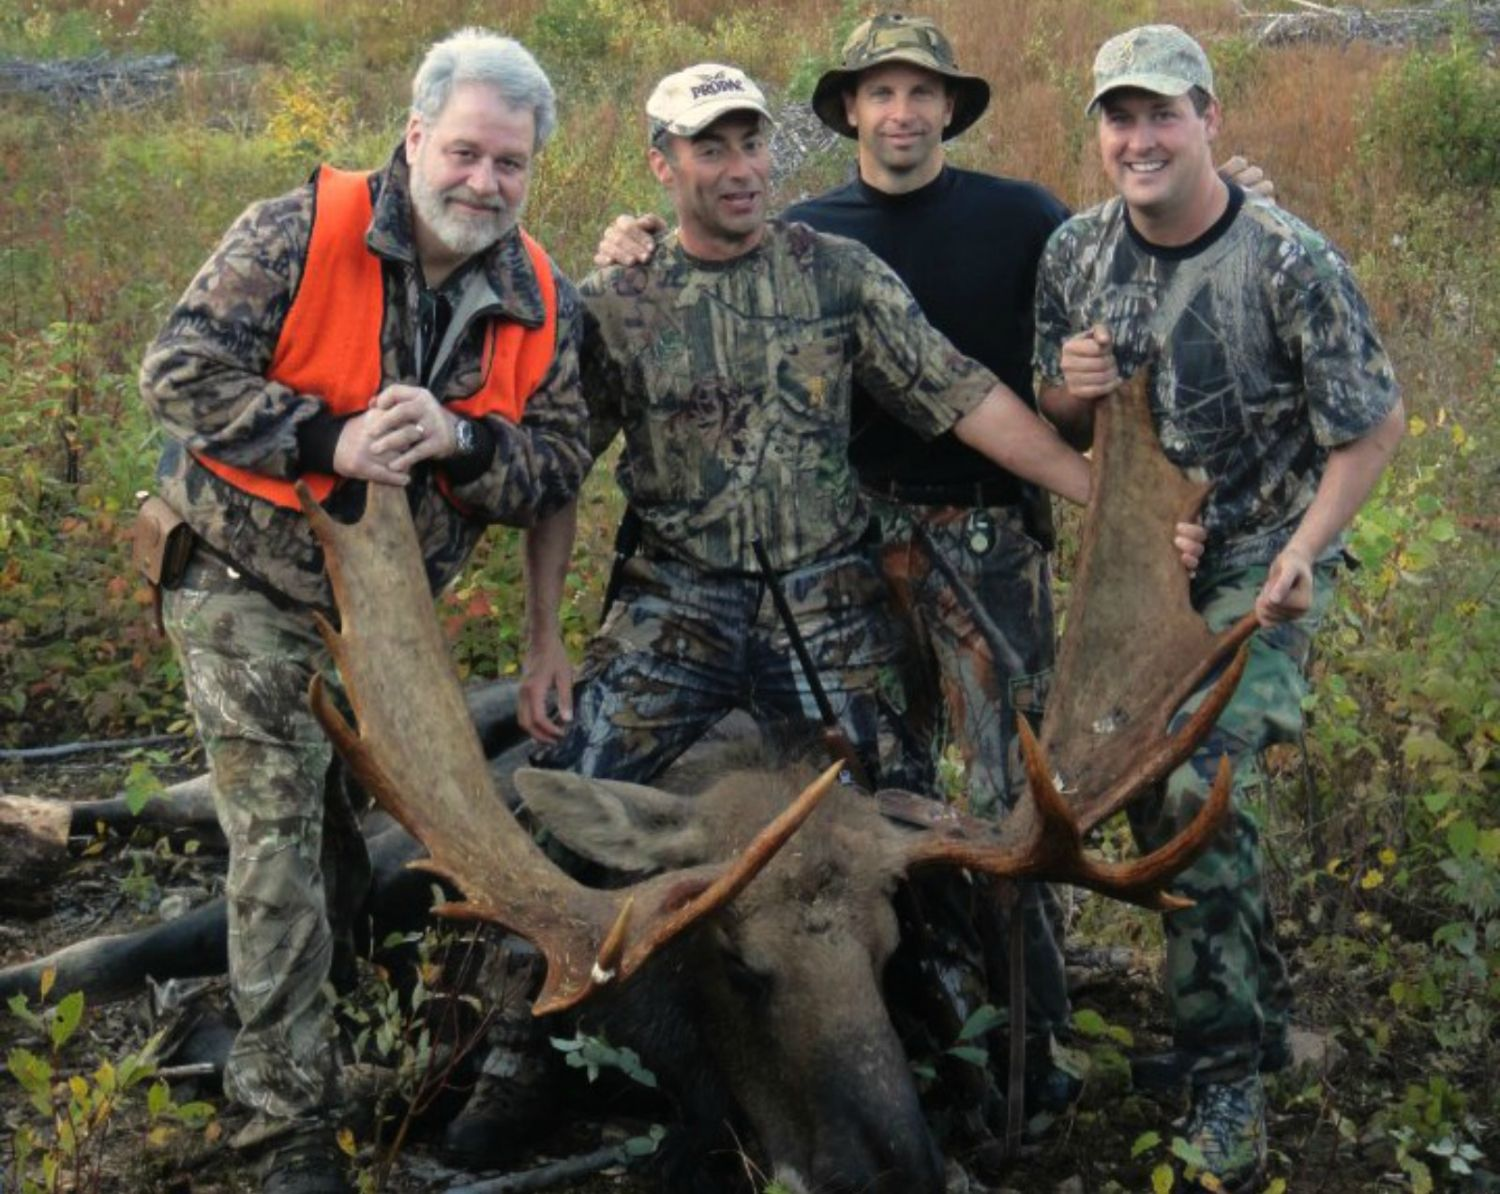 Record as an outfitter and guide … 58 inches … VERY happy for the group!